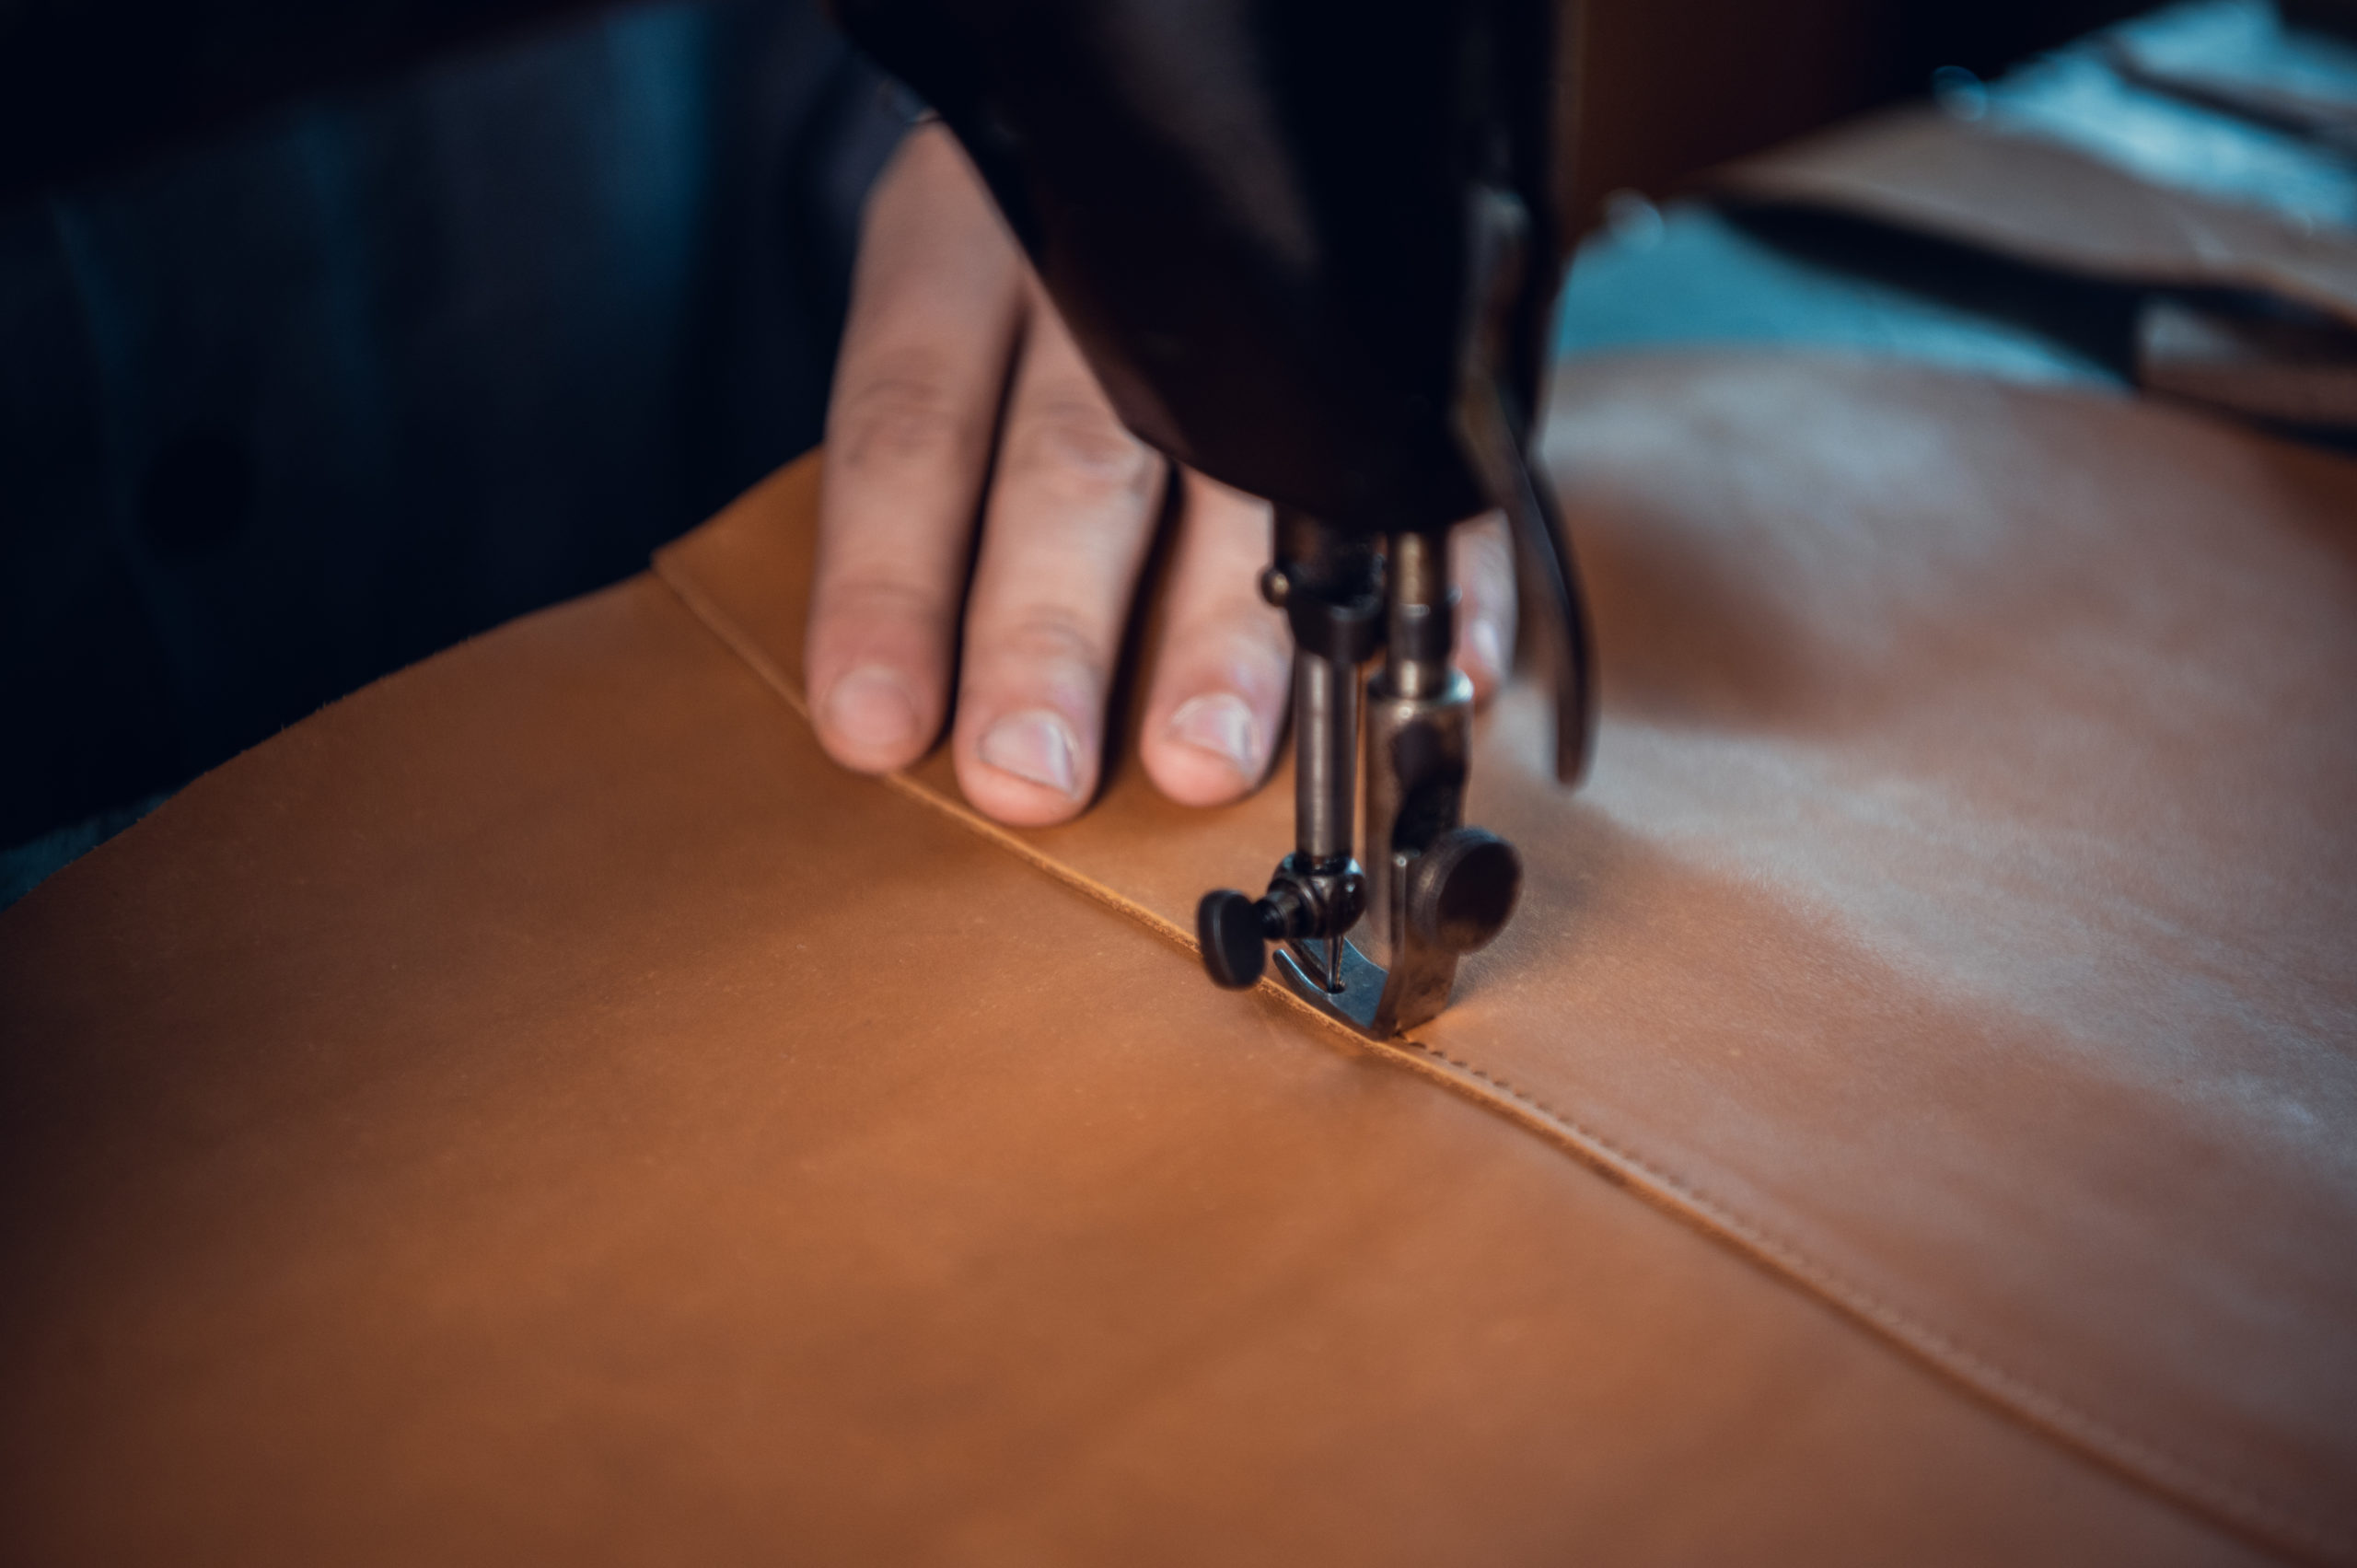 The process of stitching two pieces of genuine leather by a shoemaker on a special old-school sewing machine. Stitches of thread and the hand of the master